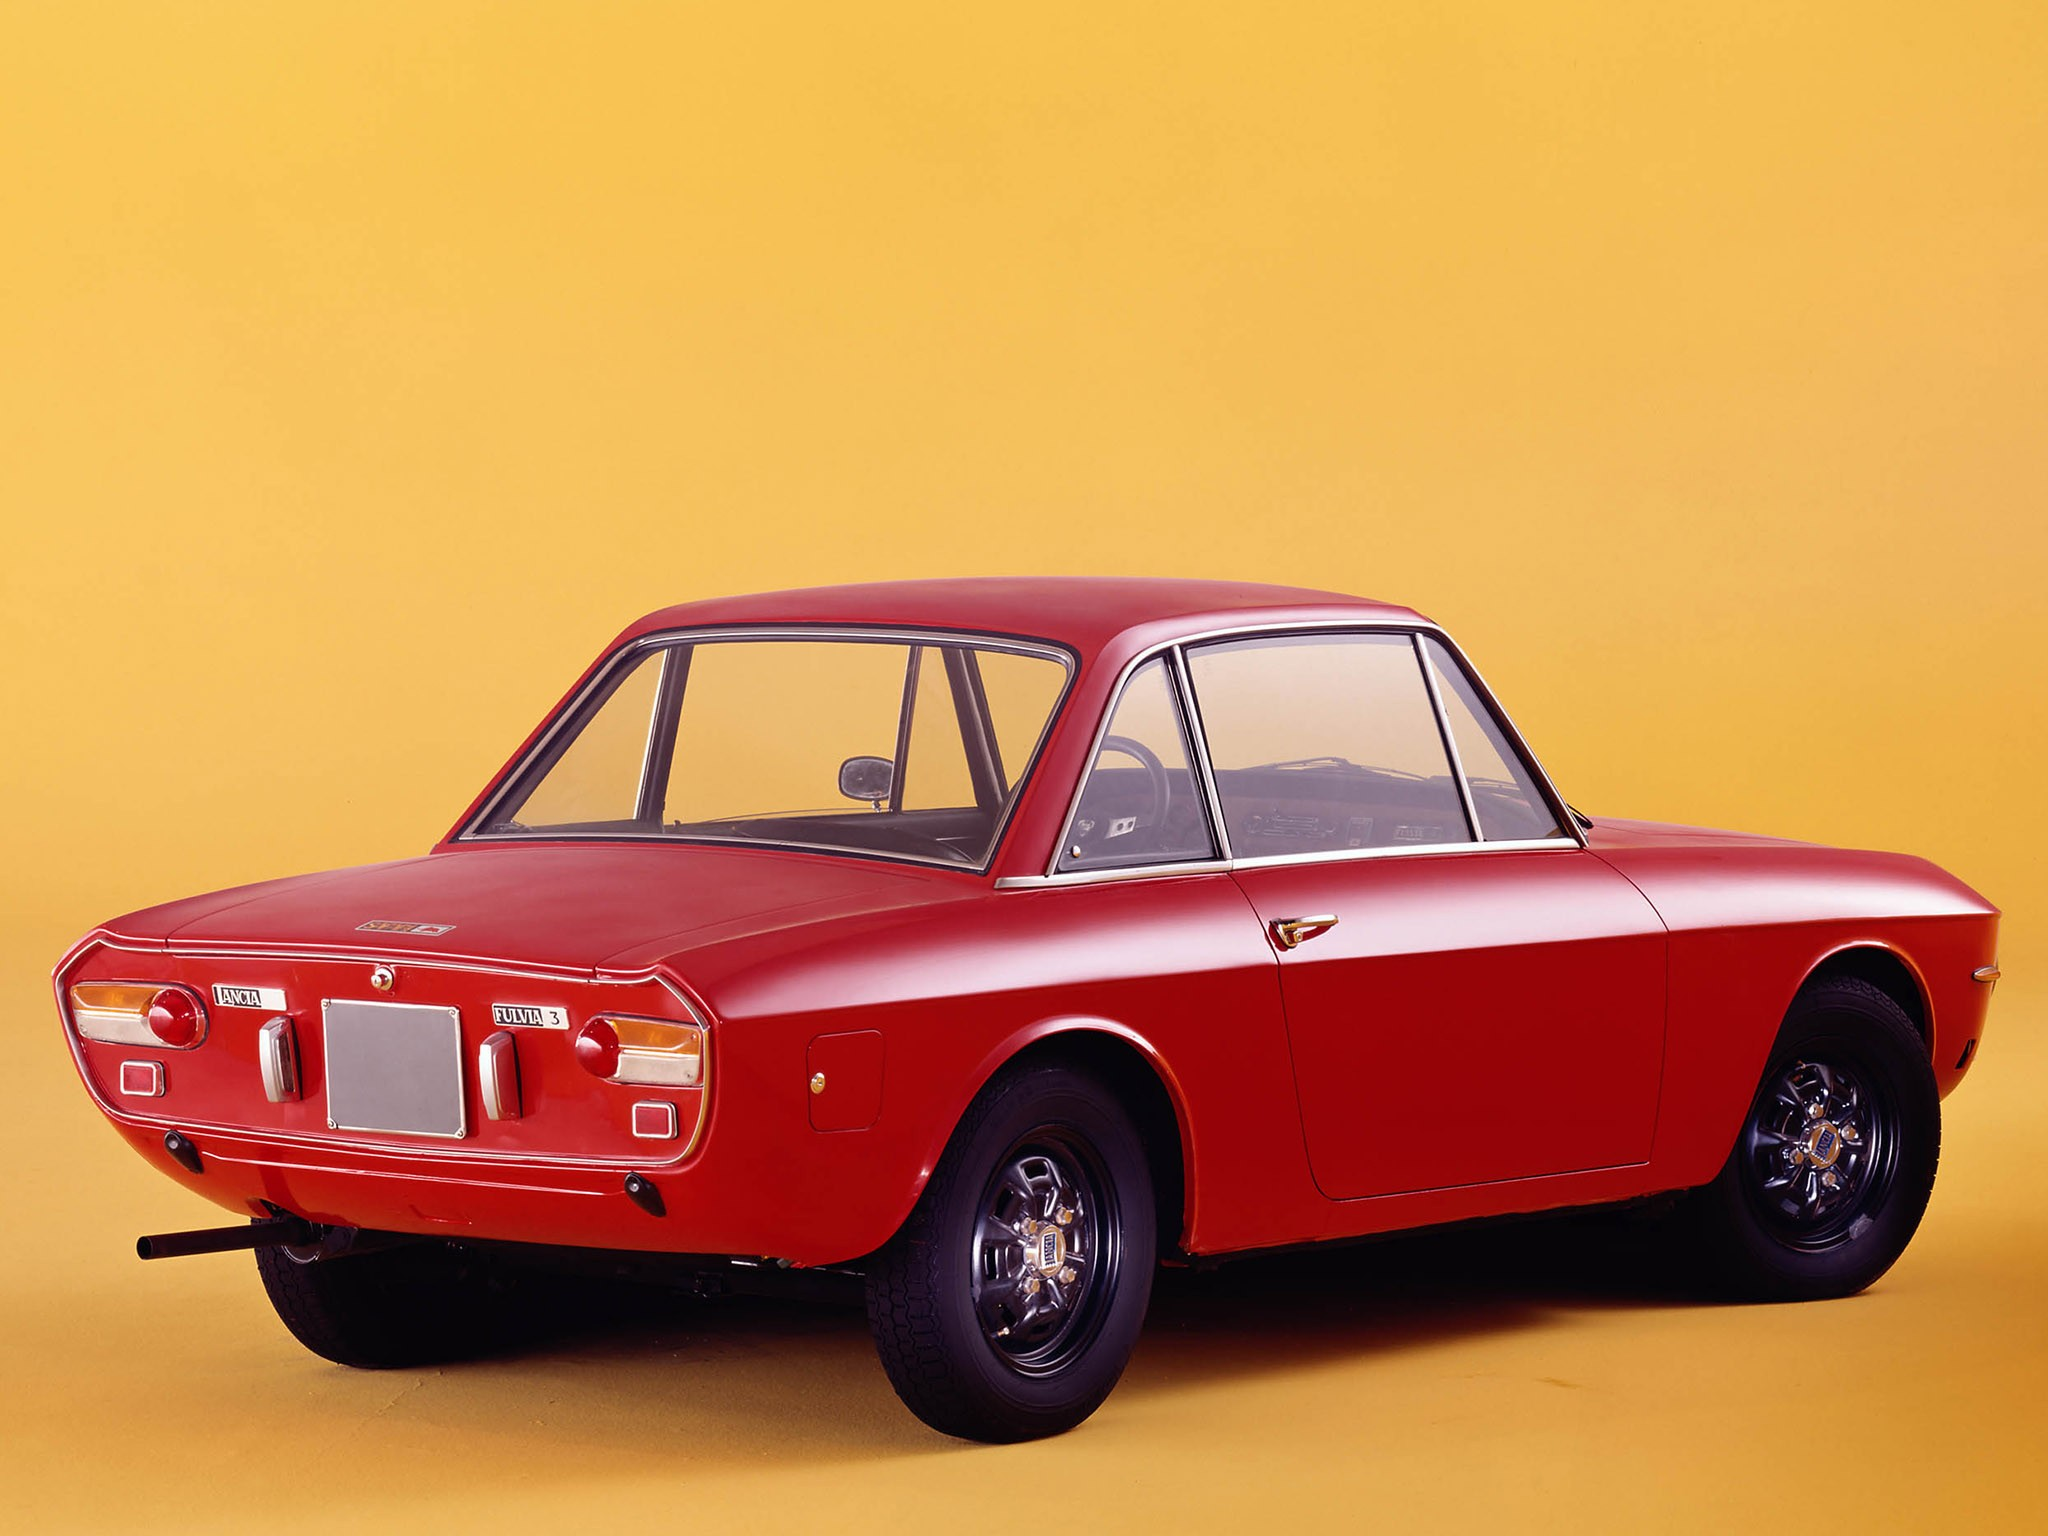 1973 Lancia Fulvia Coupe Safari